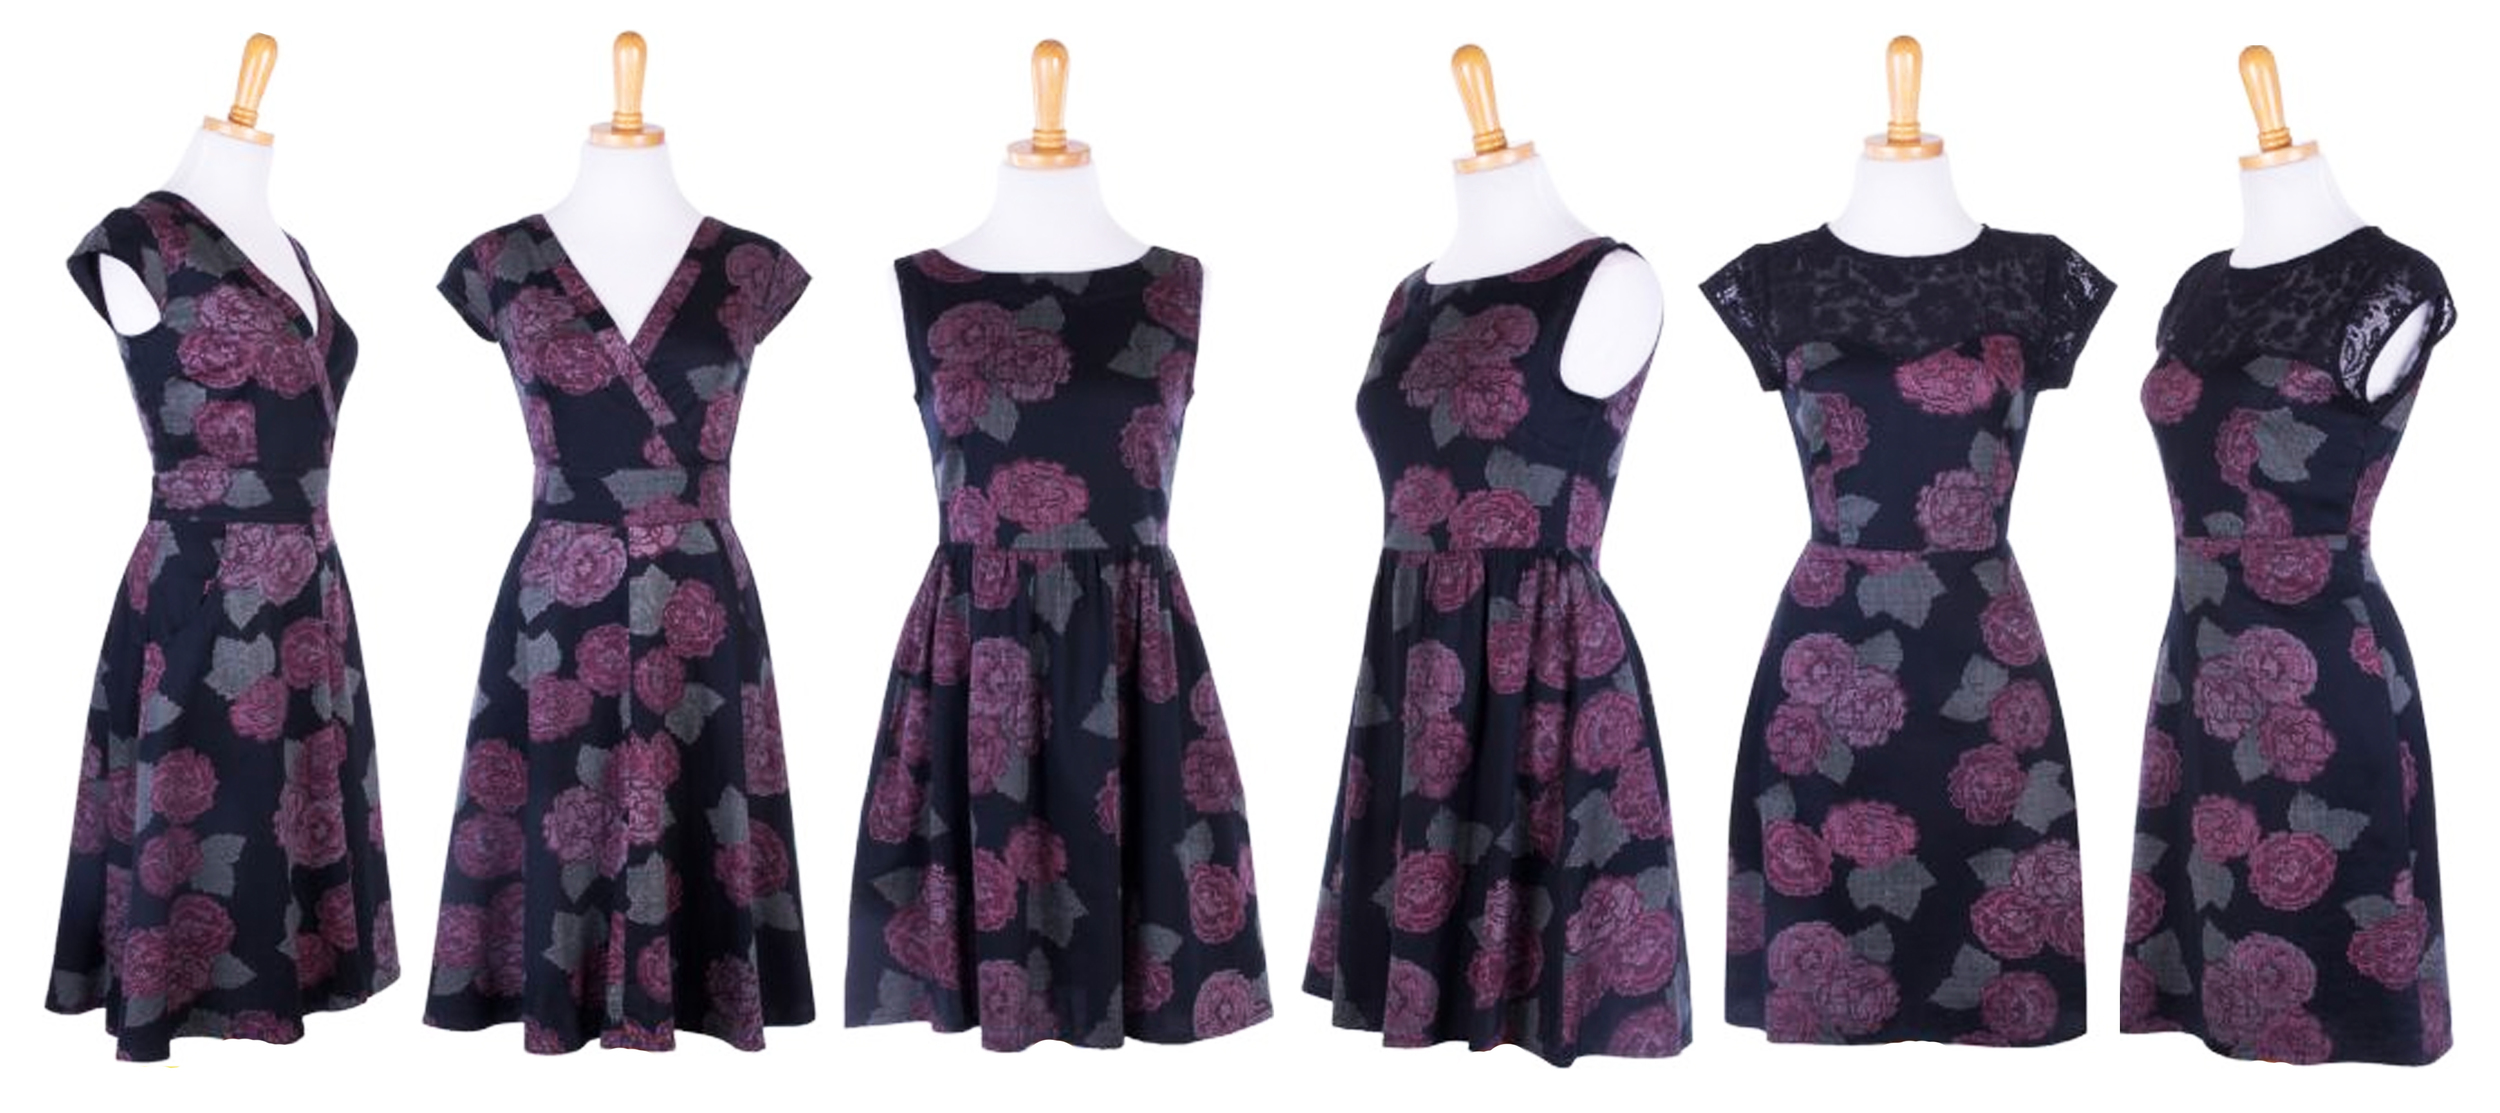 Left: Oberlin Dress    Middle: Hello Dolly   Right: Loyal Love Dress